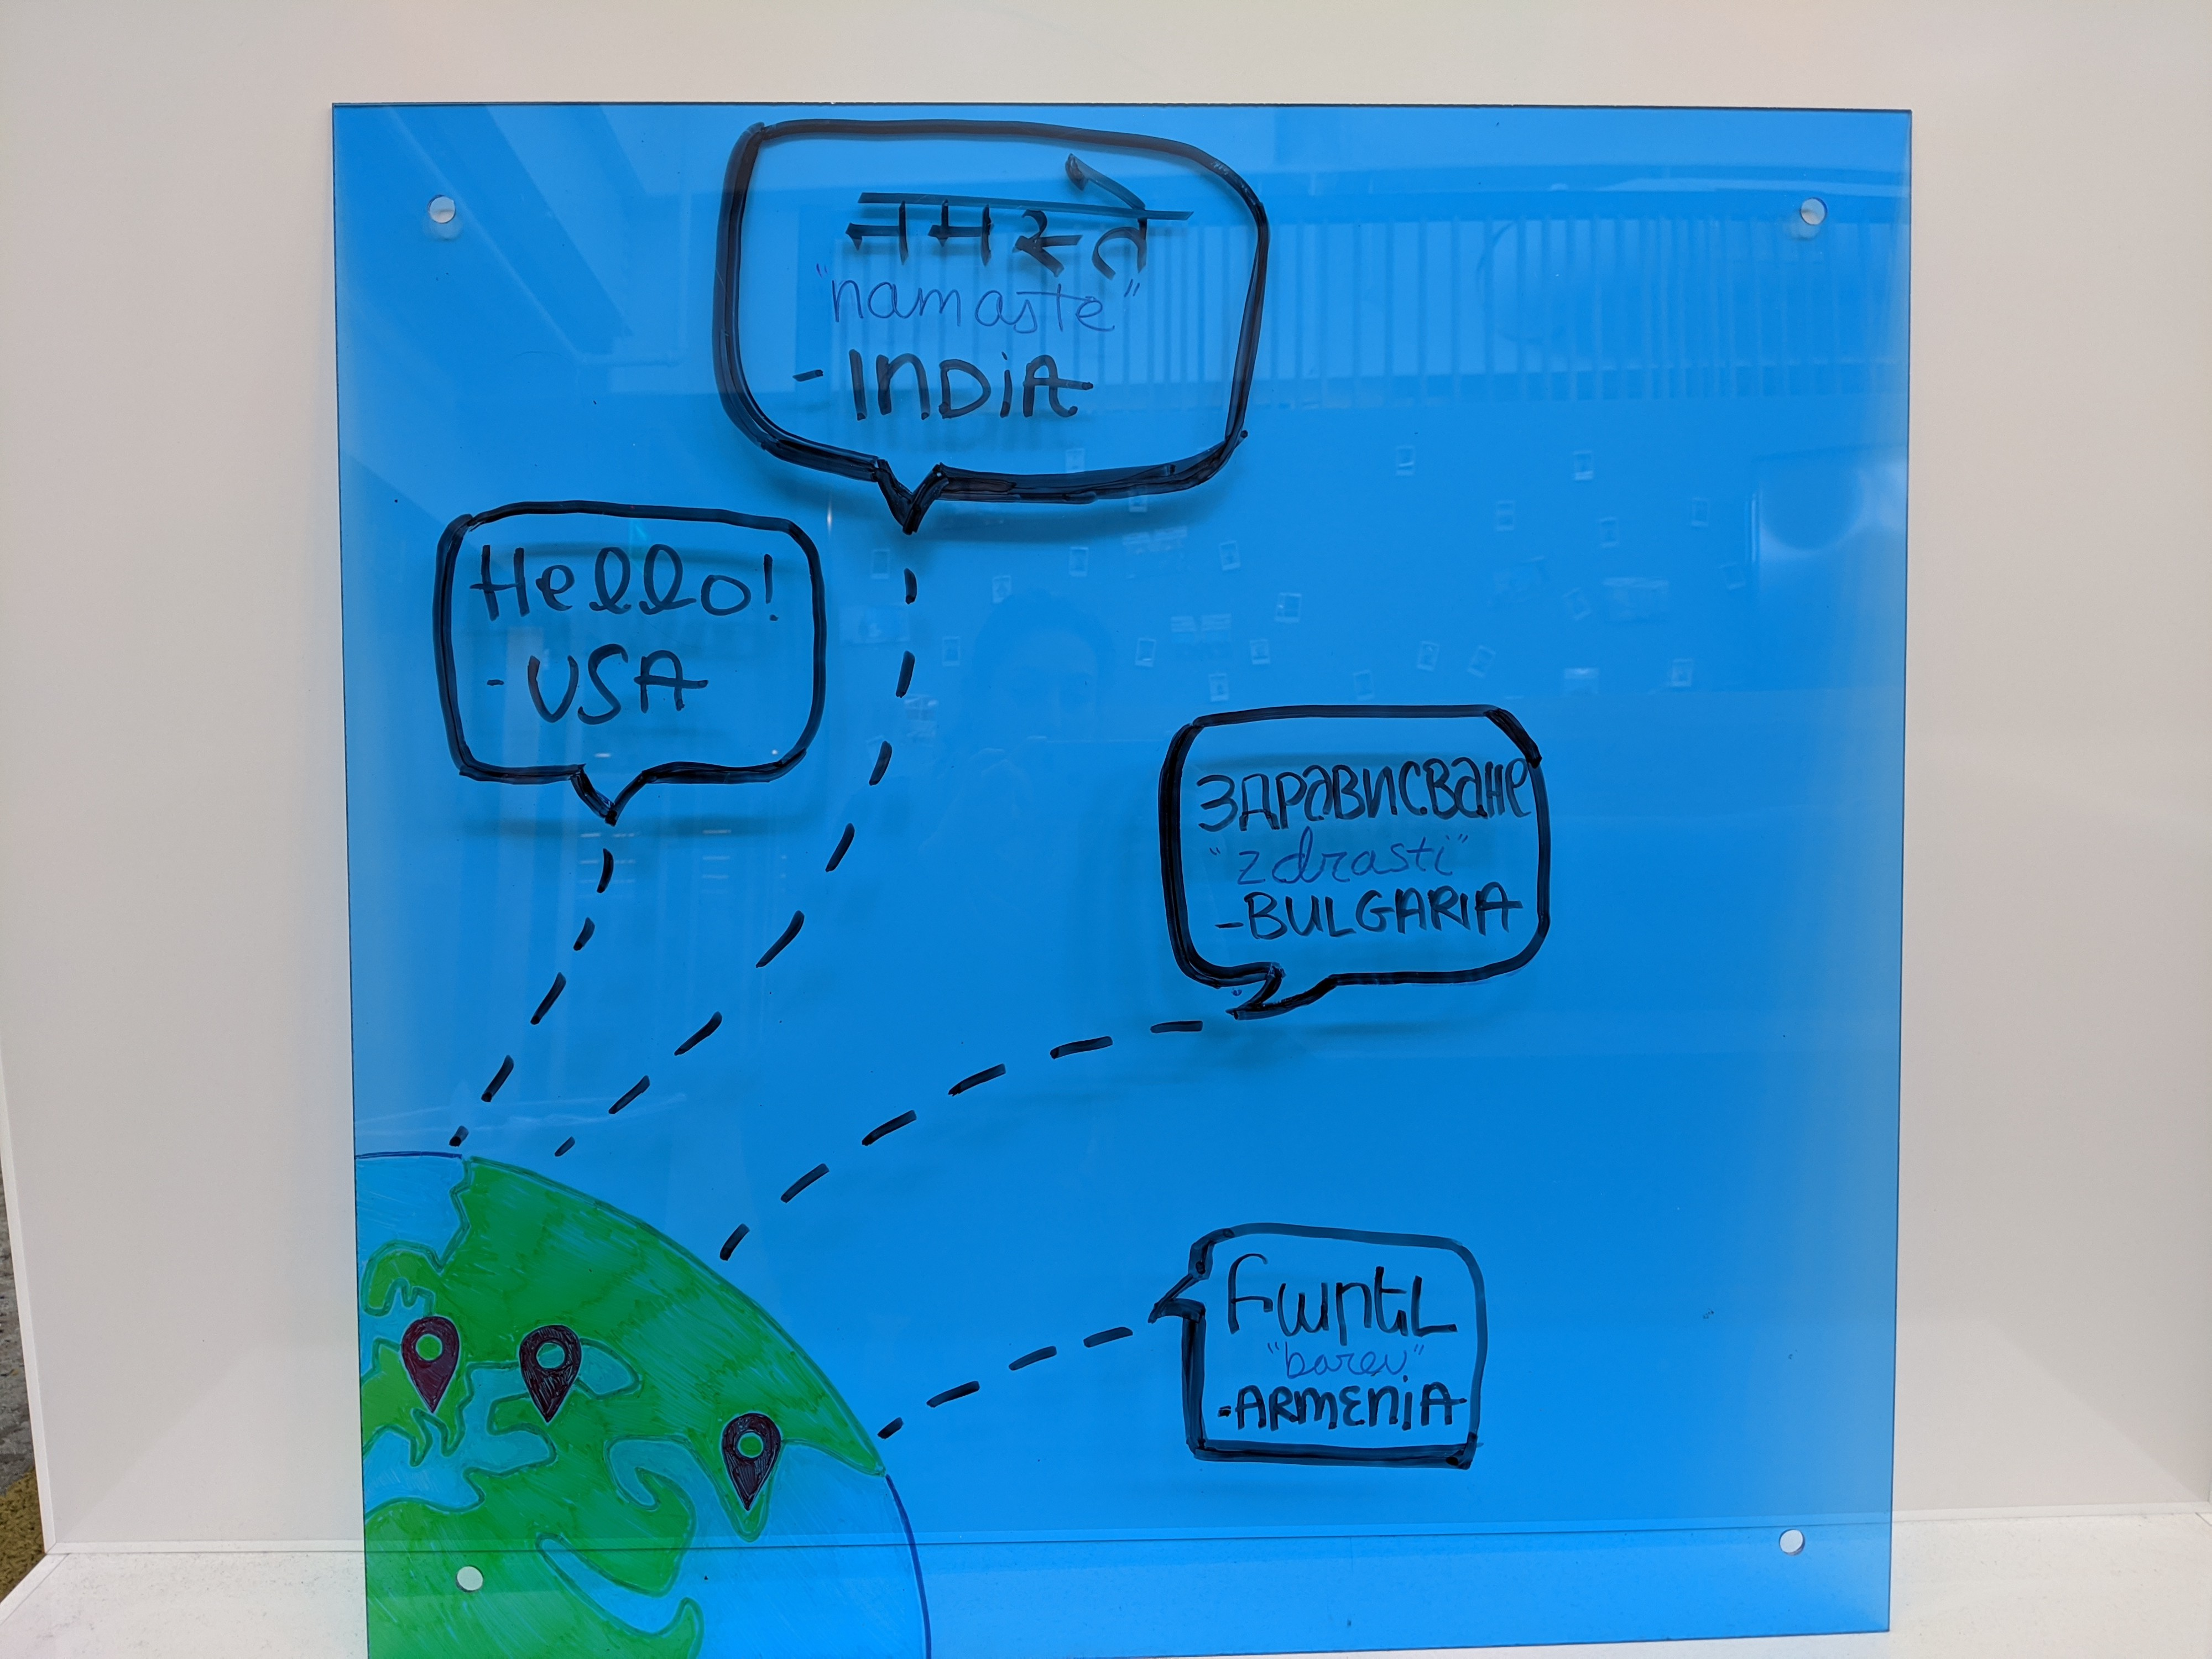 Whiteboard sketch of the locations globally where designers from VMware are located.